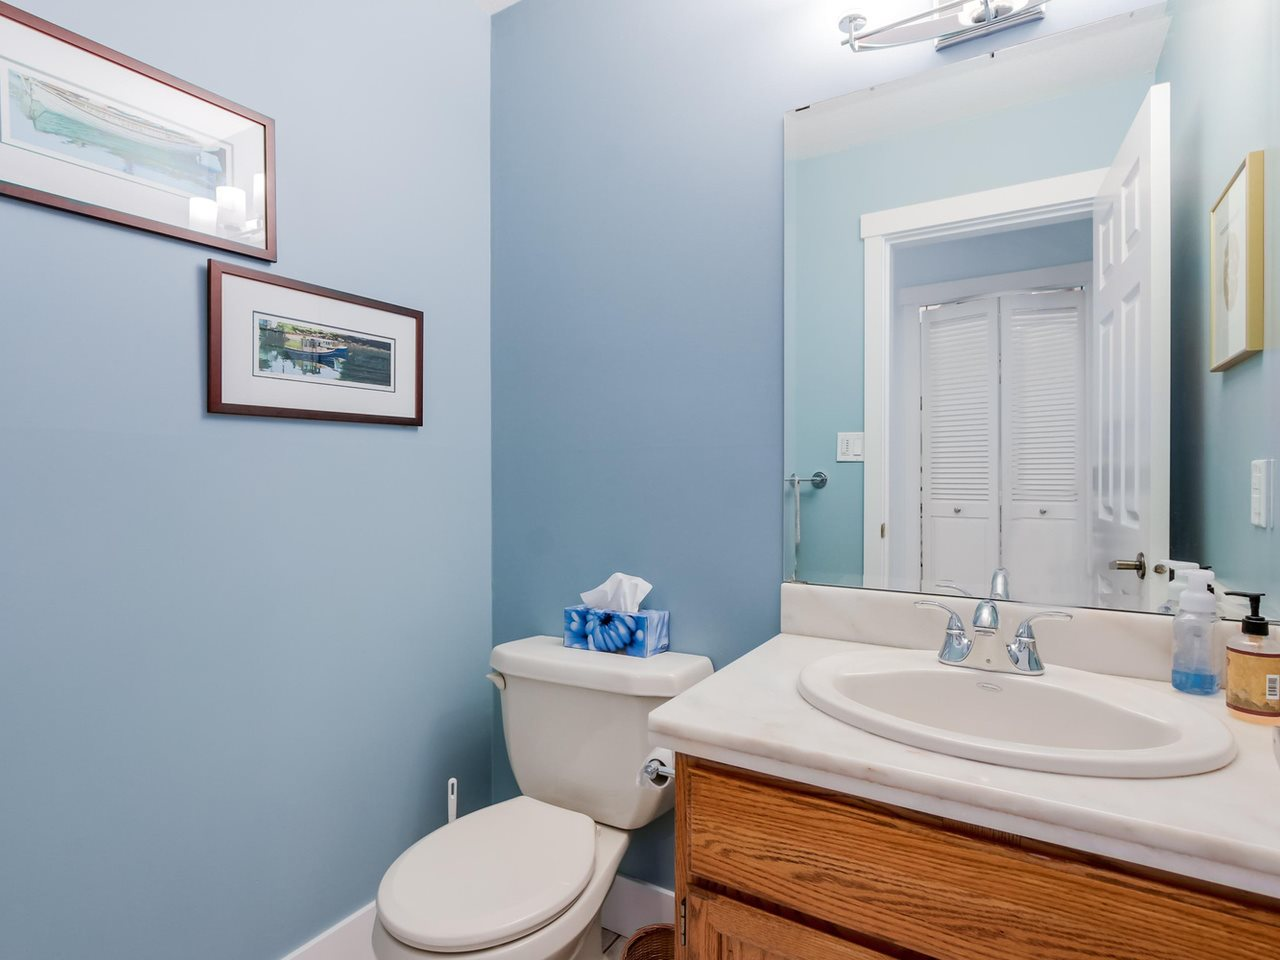 "Photo 10: 5184 SAPPHIRE Place in Richmond: Riverdale RI House for sale in ""RIVERDALE"" : MLS® # R2078811"